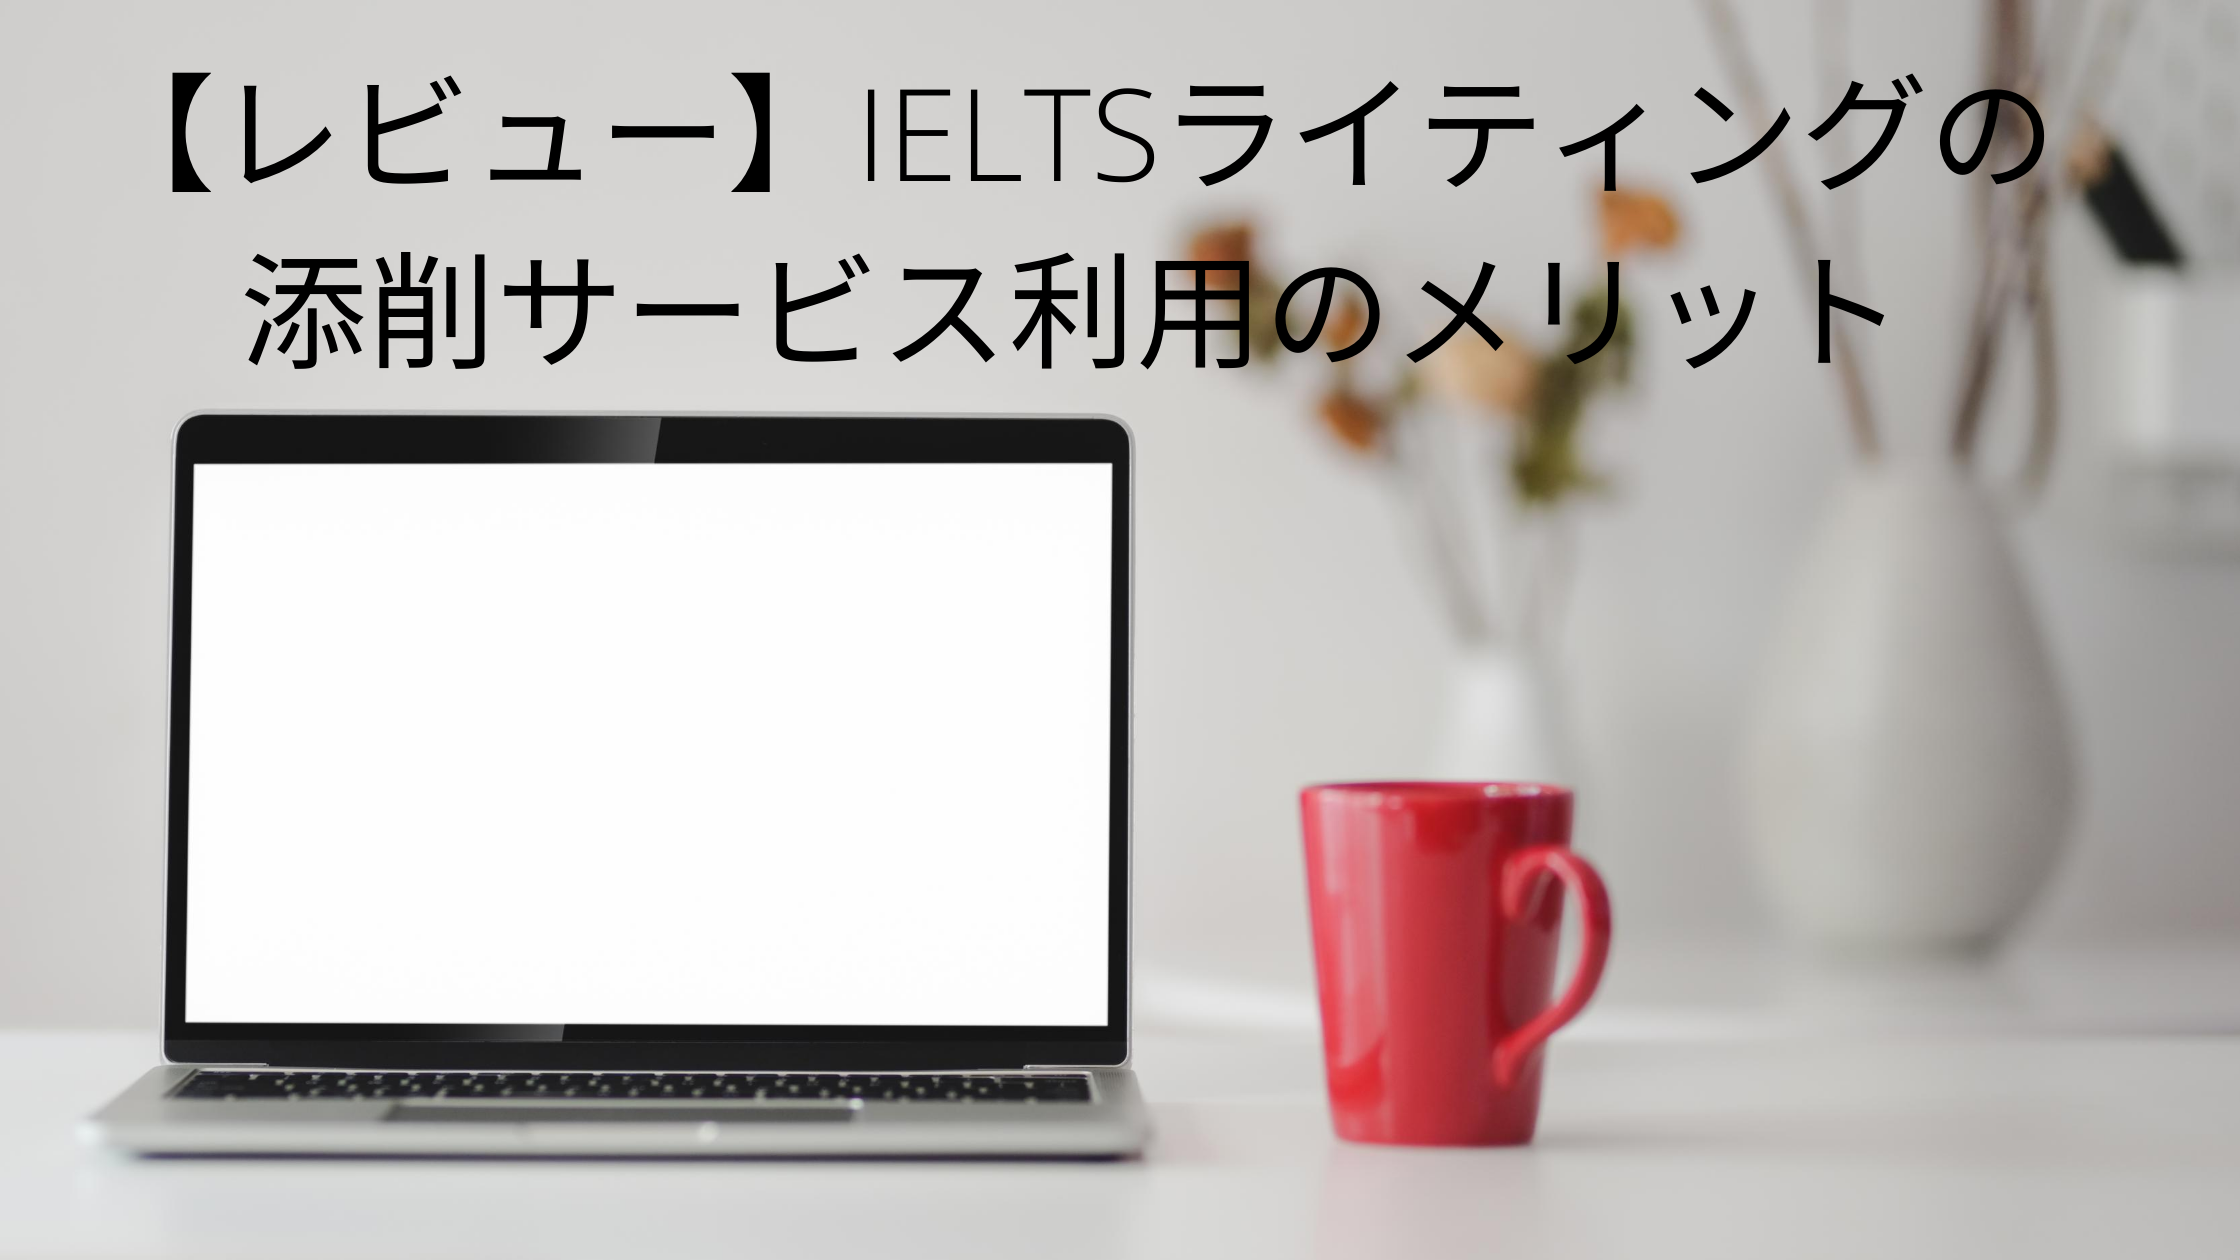 IELTS correction